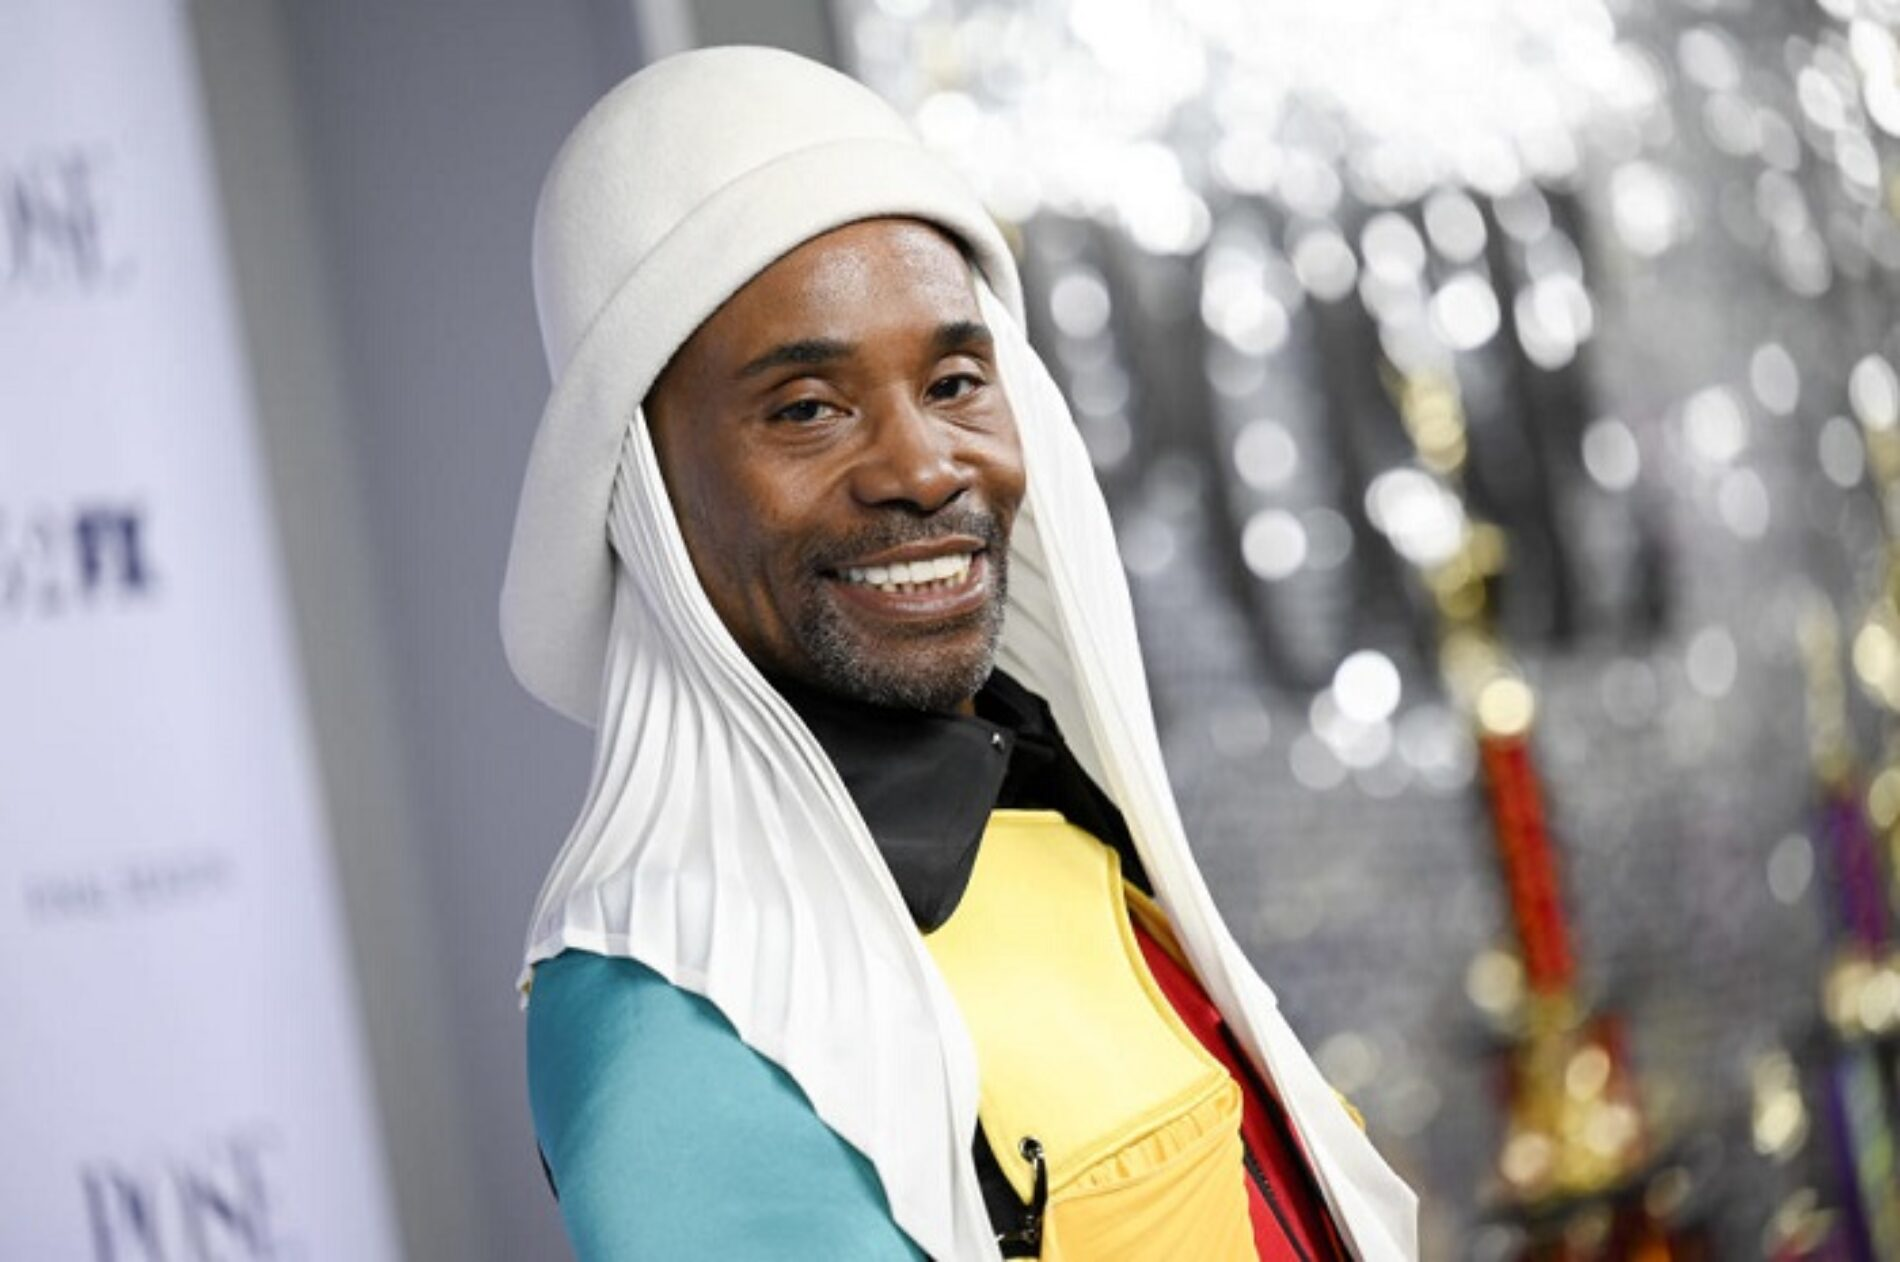 Billy Porter reveals that he's been living with HIV for 14 years